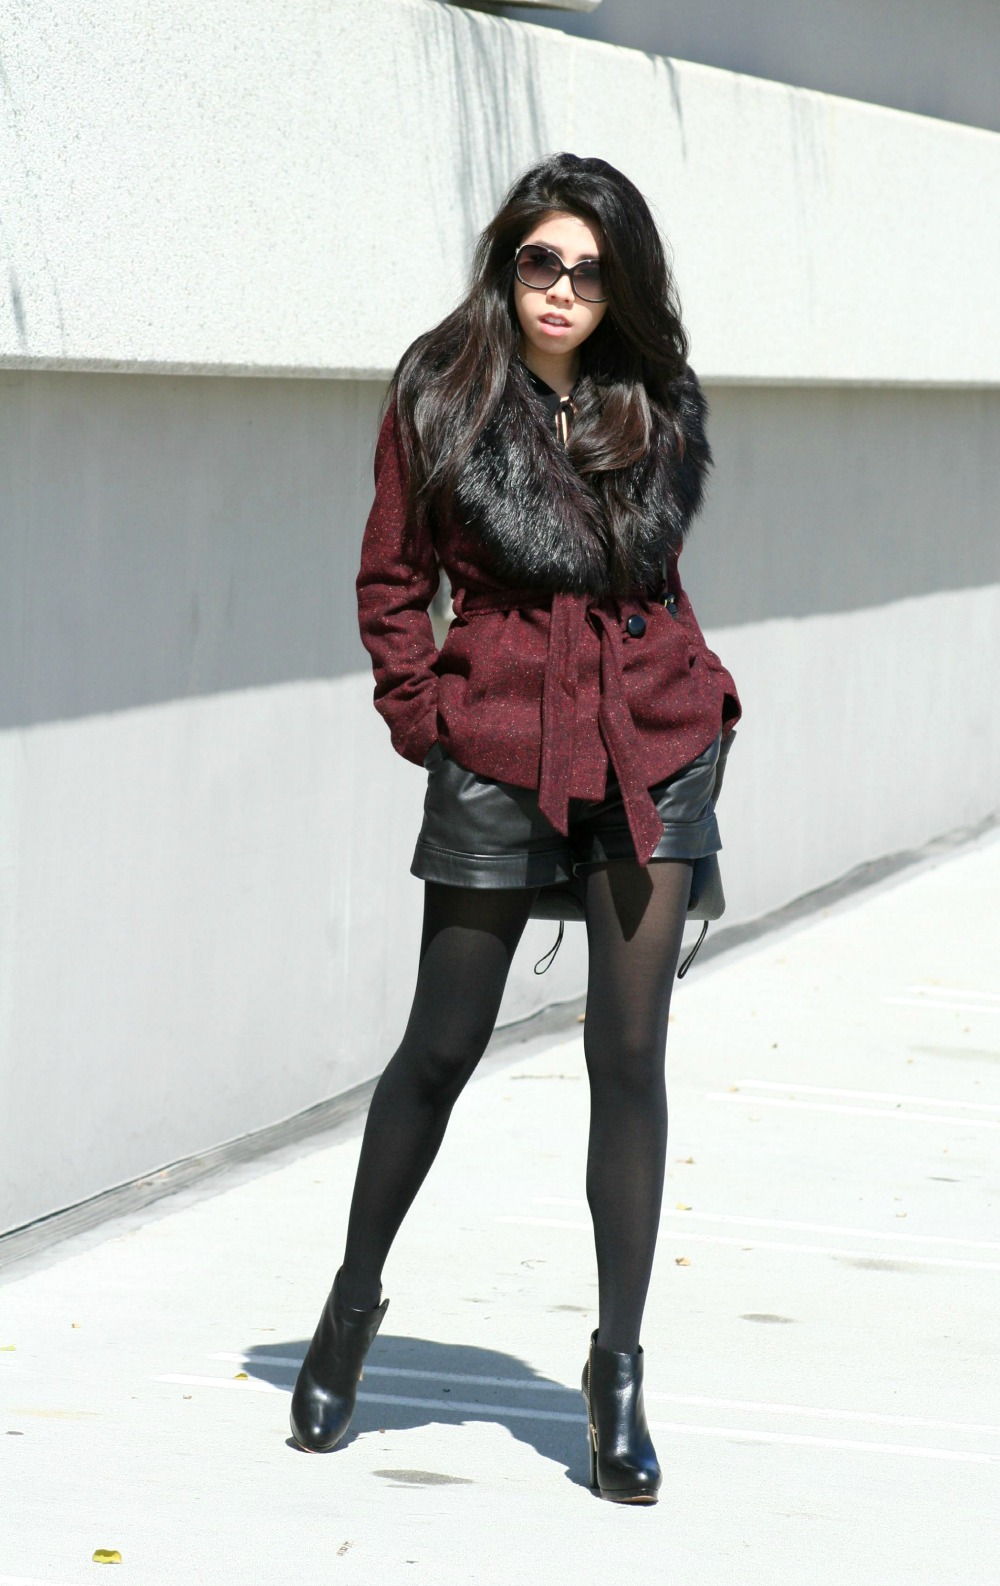 What to Wear with Black Leather Shorts_How to Look Classy in Black Leather Shorts_Shorts and Tights_Fall Fashion_Adrienne Nguyen_Invictus